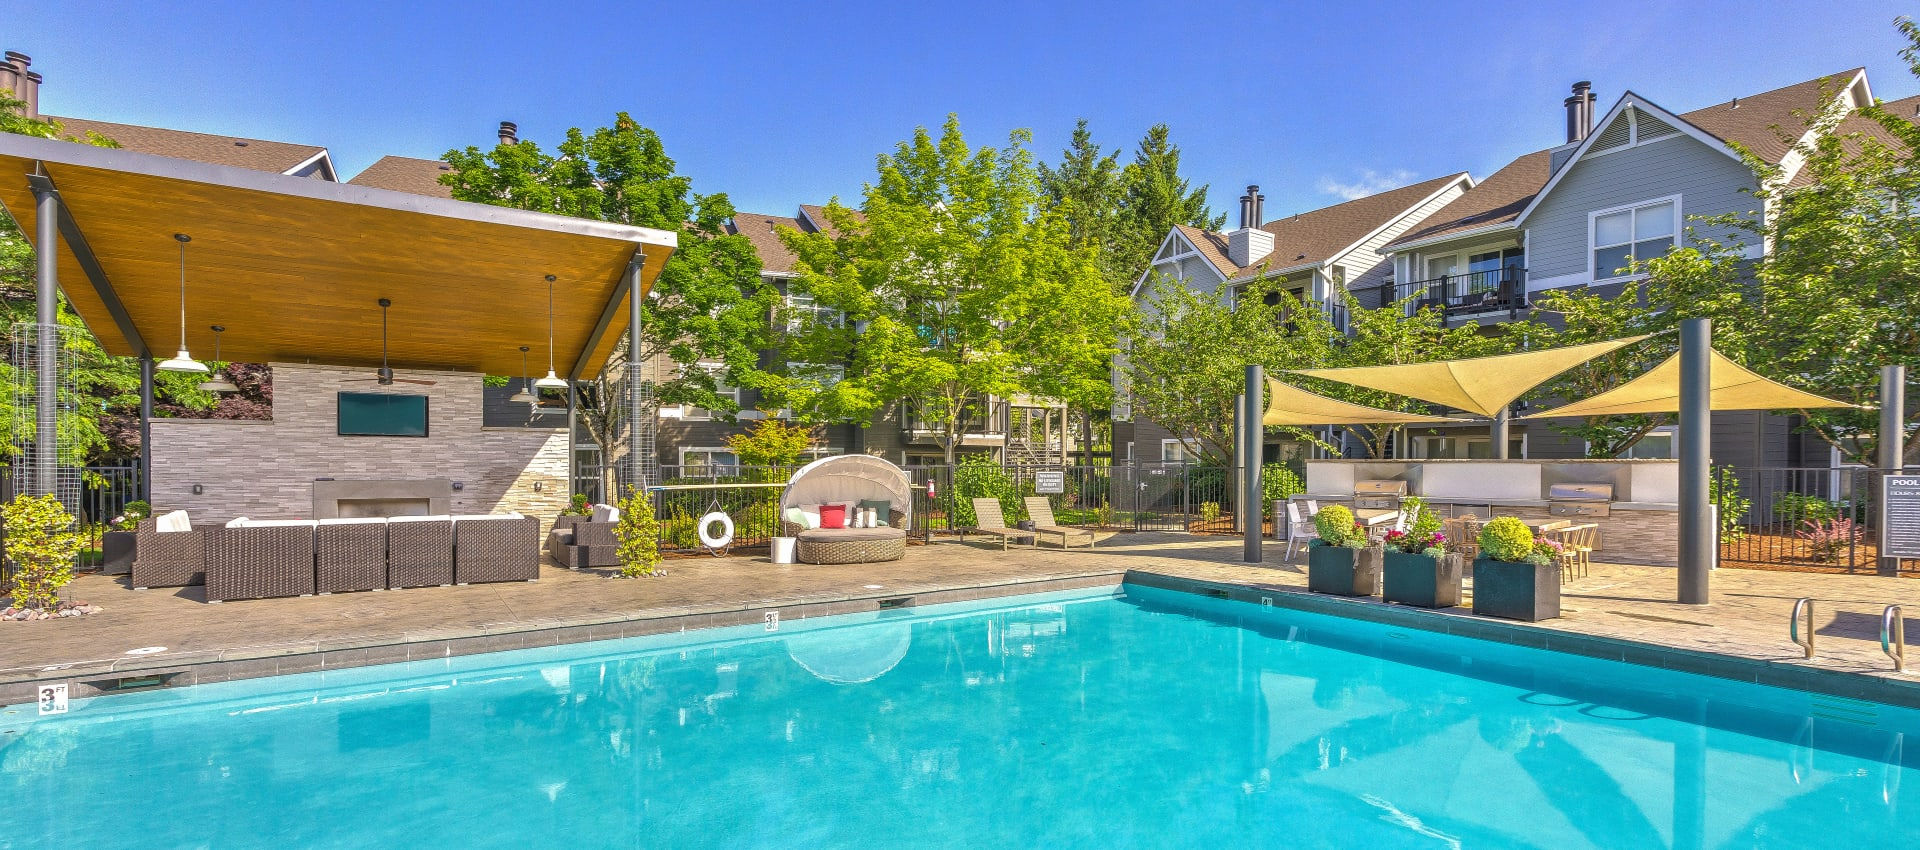 Pool and lounge area at Centro Apartment Homes in Hillsboro, Oregon